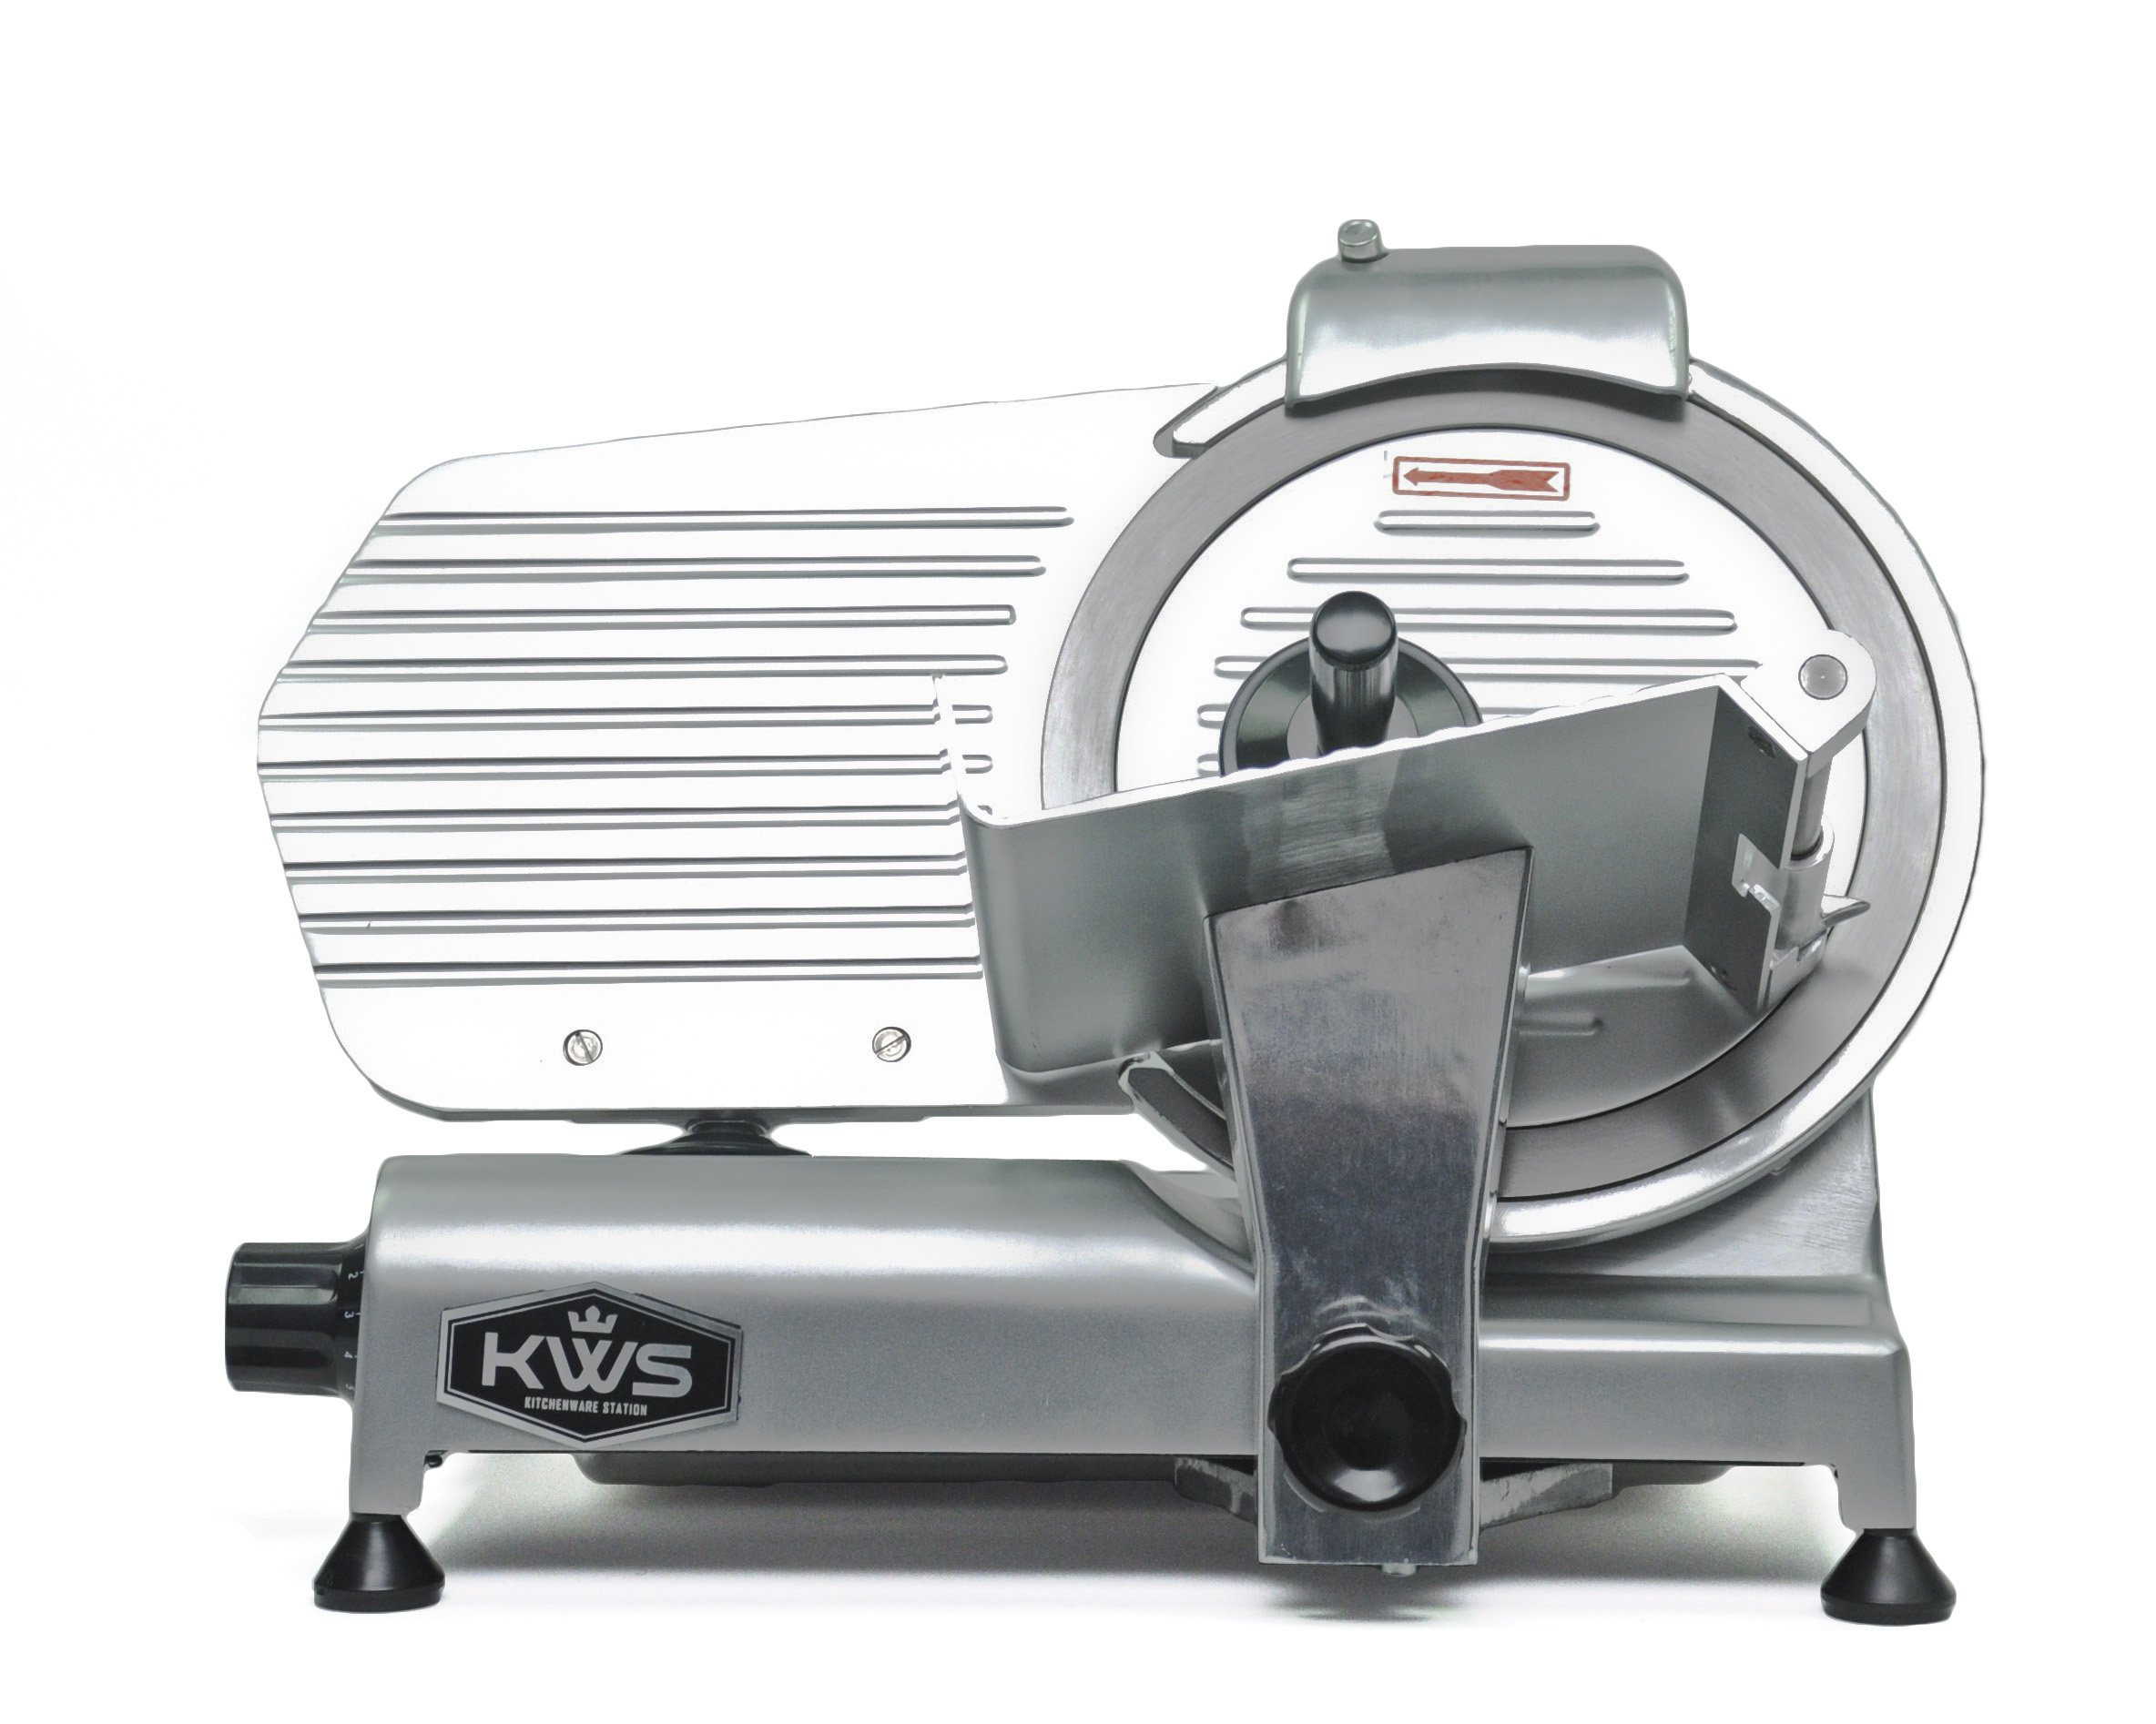 KWS Commercial 320w Electric Meat Slicer 10'' Frozen Meat Deli Slicer Coffee Shop/restaurant and Home Use Low Noises (Stainless Steel Blade-Silver) by KitchenWare Station